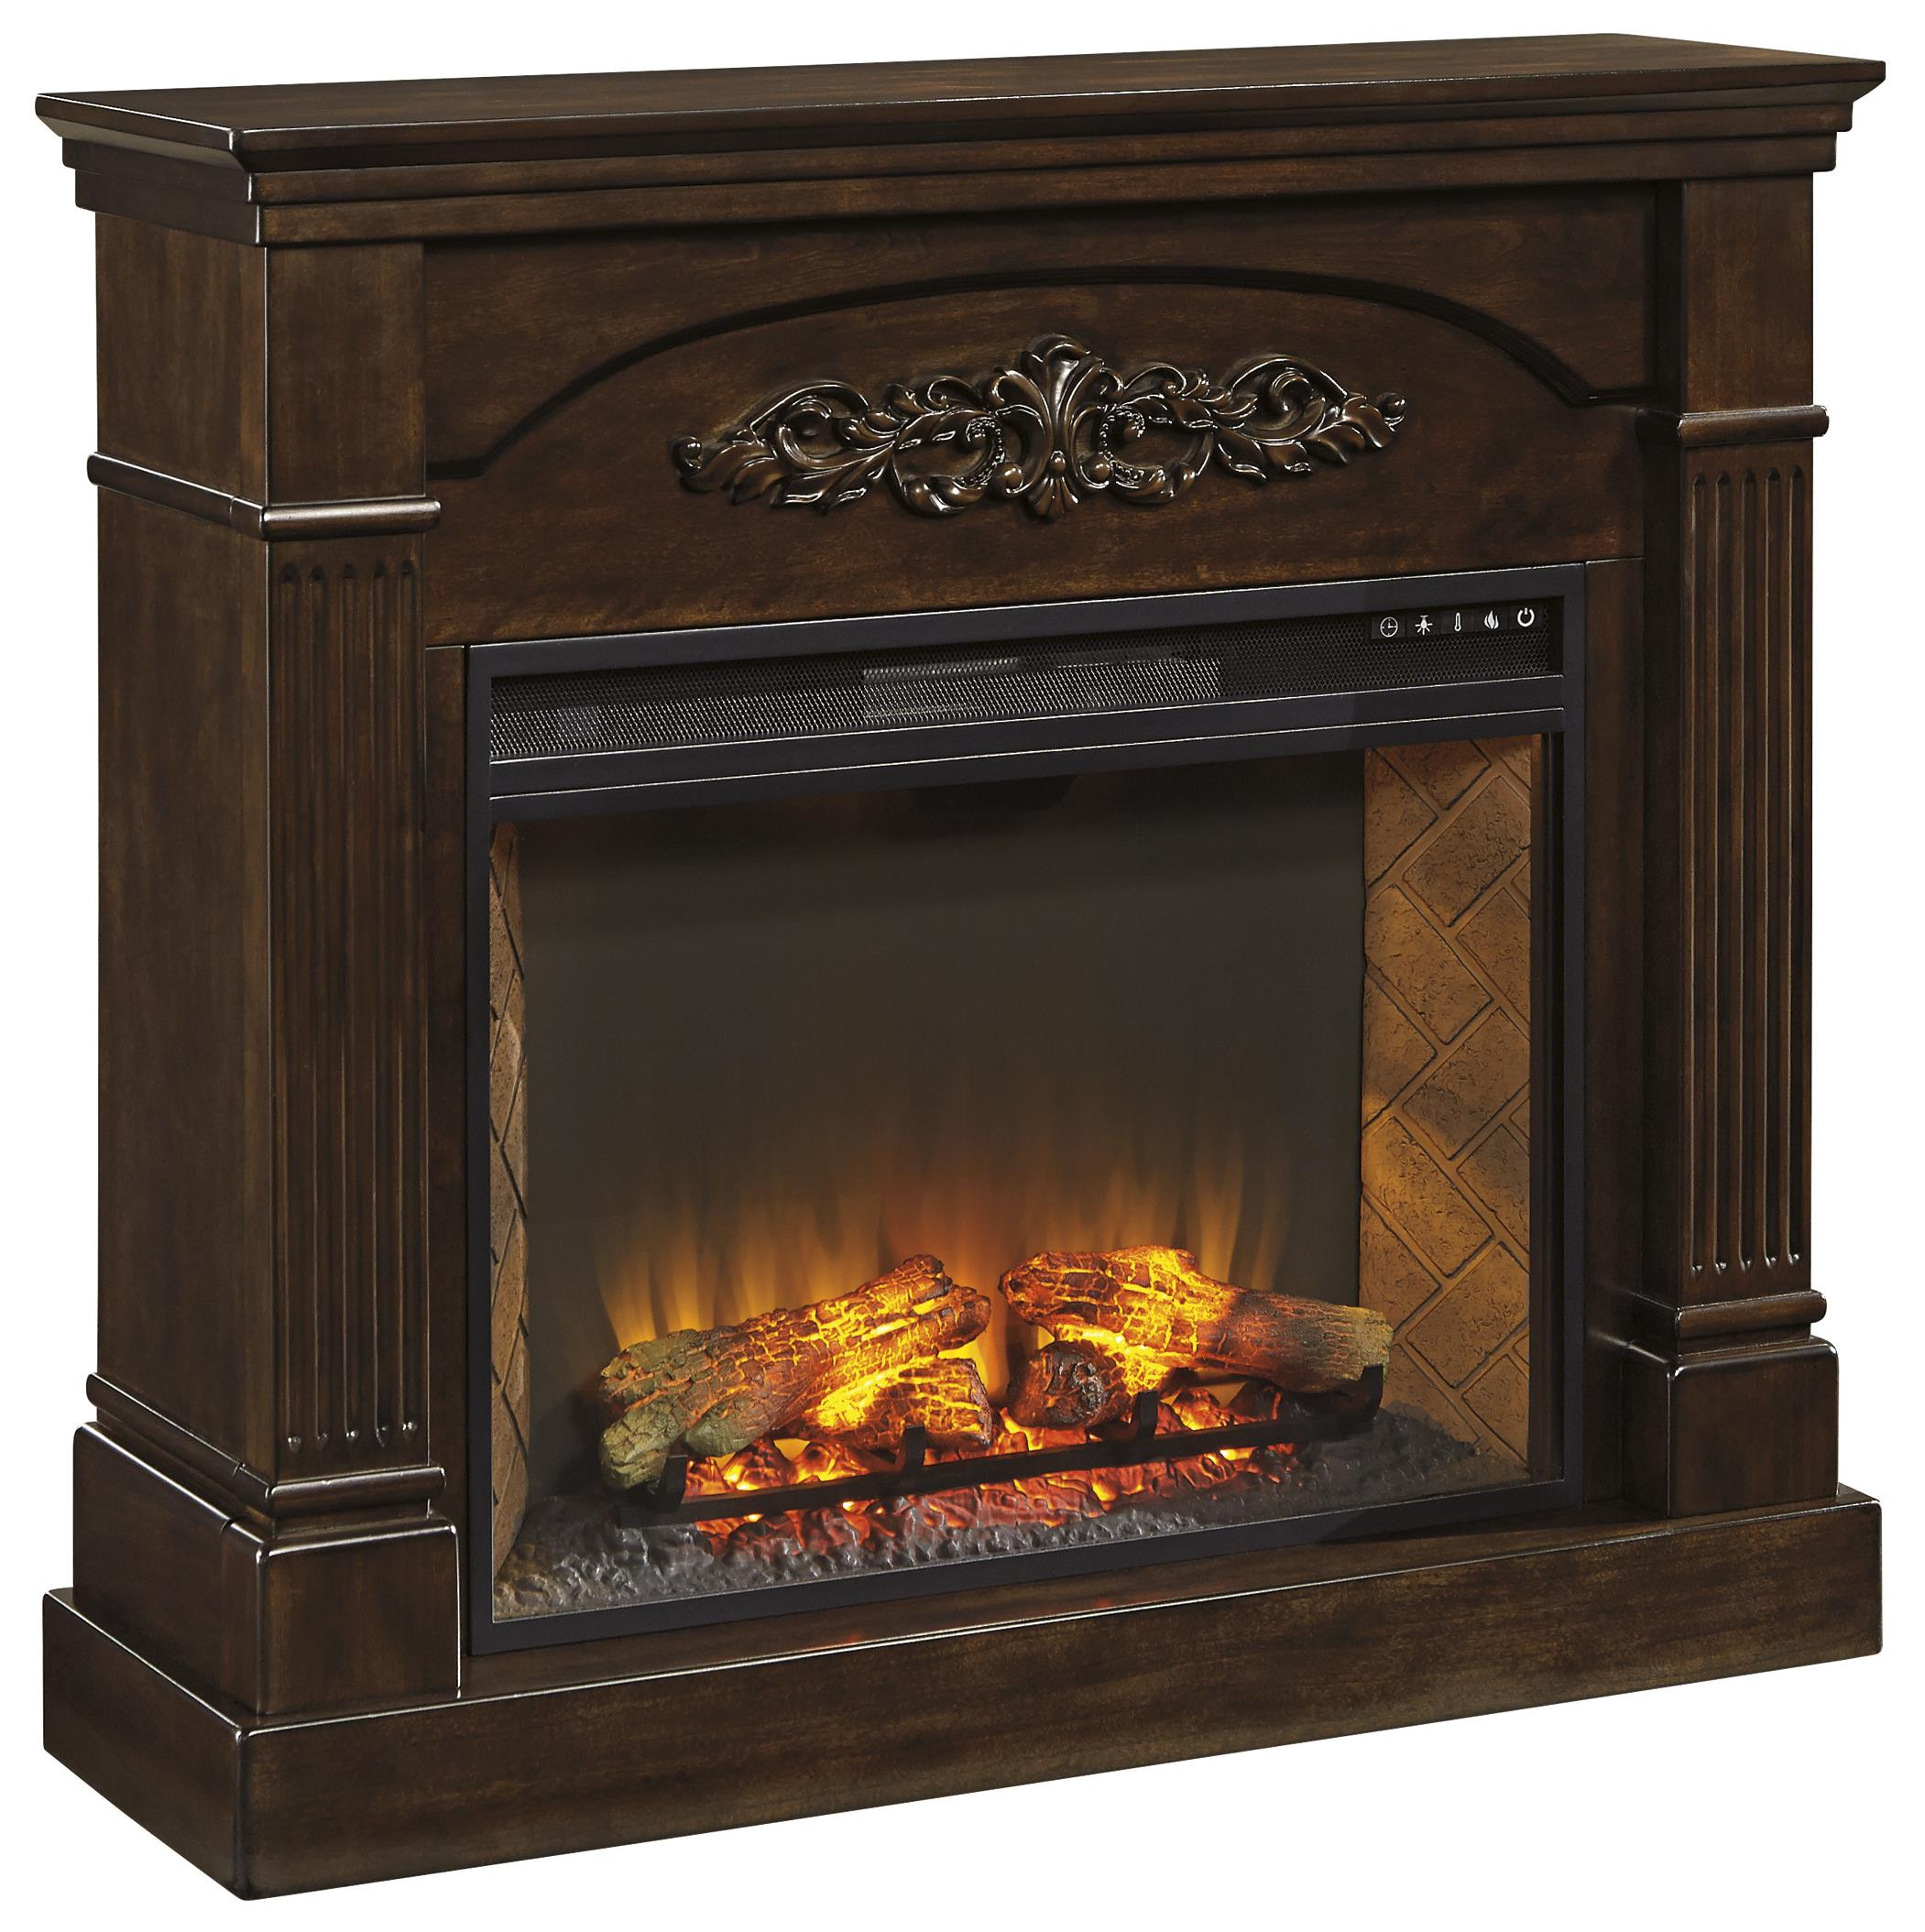 Signature Design by Ashley Boddew Fireplace Mantel - Item Number: W600-120